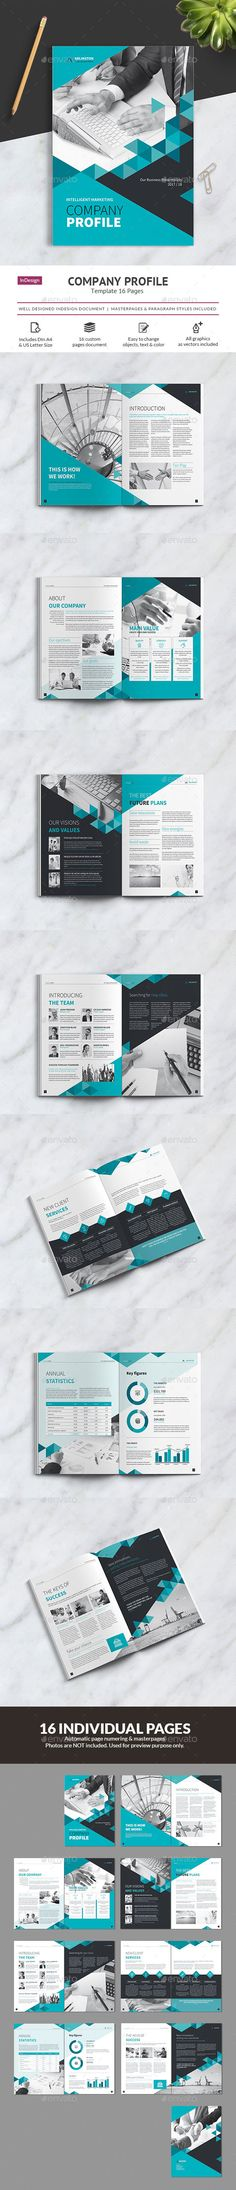 Company Profile Vol.2 — InDesign INDD #template #letter • Available here → https://graphicriver.net/item/company-profile-vol2/19570819?ref=pxcr